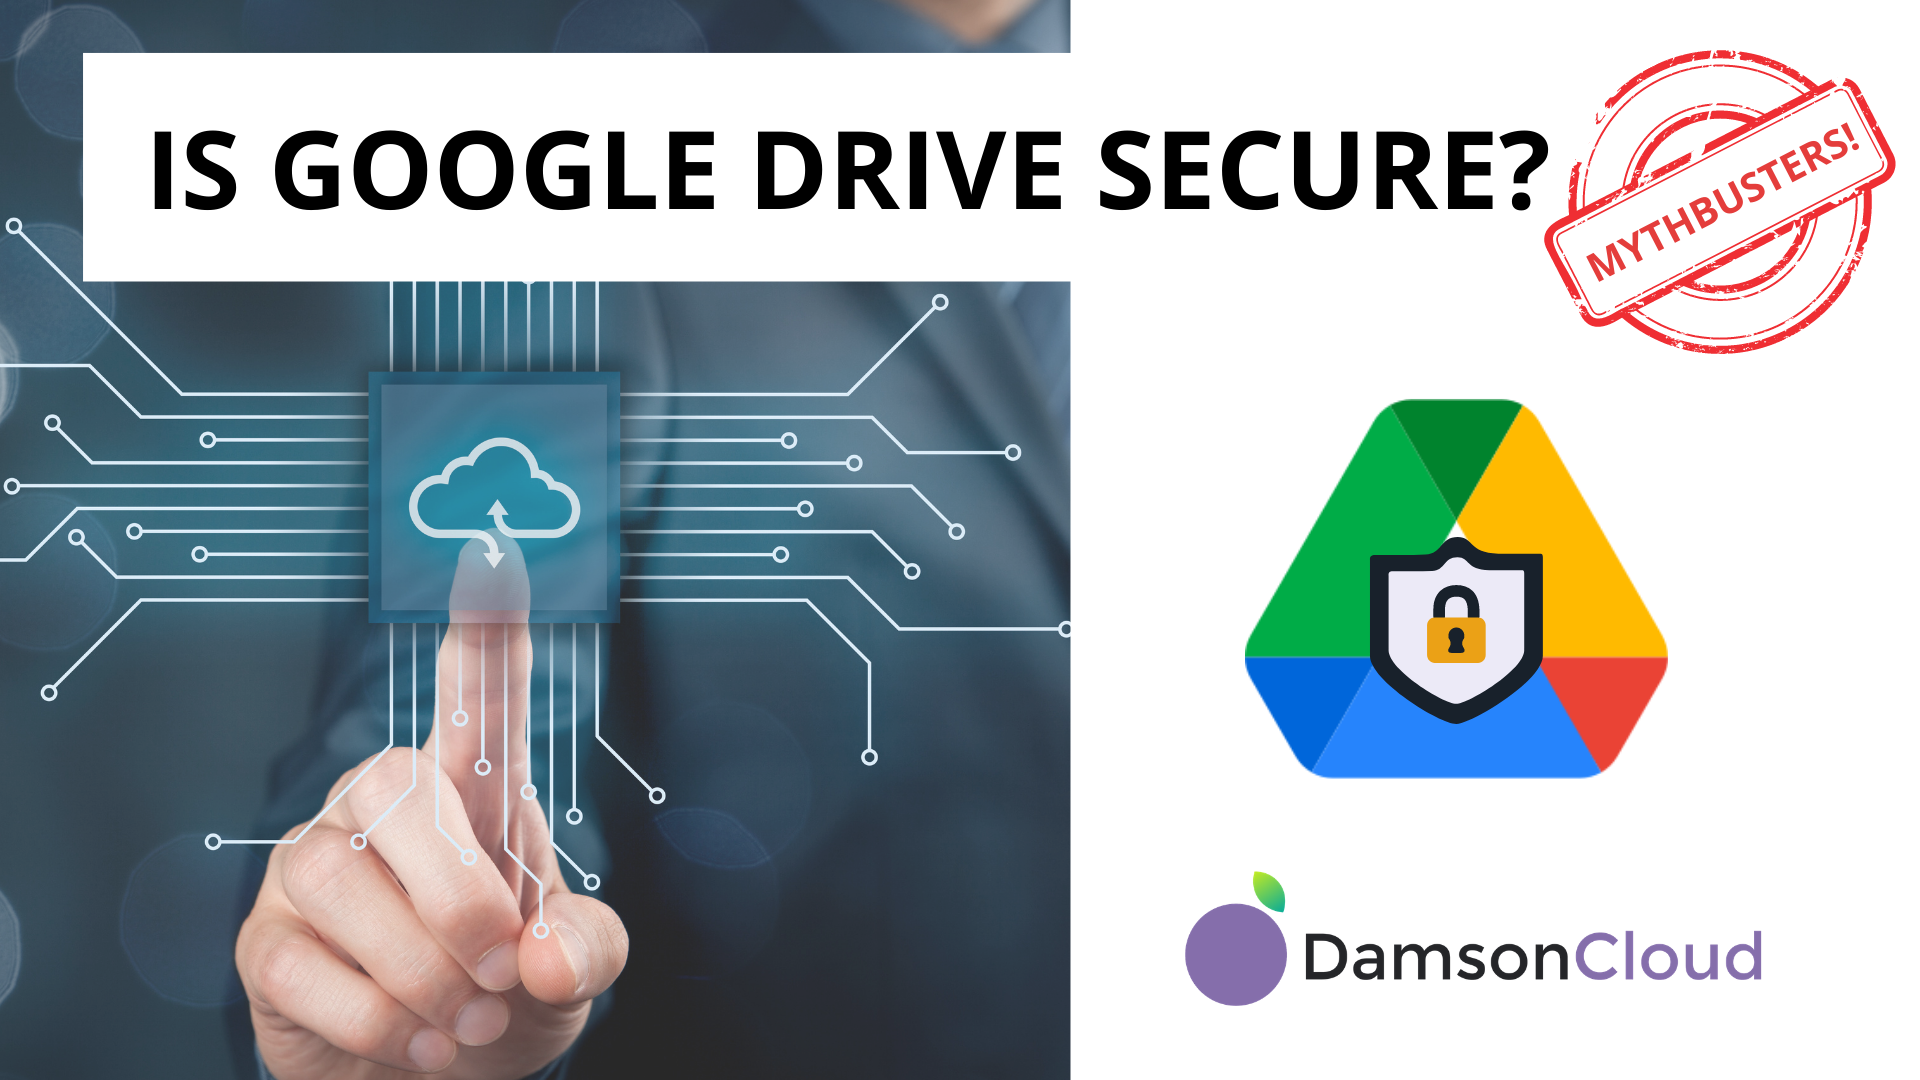 Mythbusters: Is Google Drive Secure?